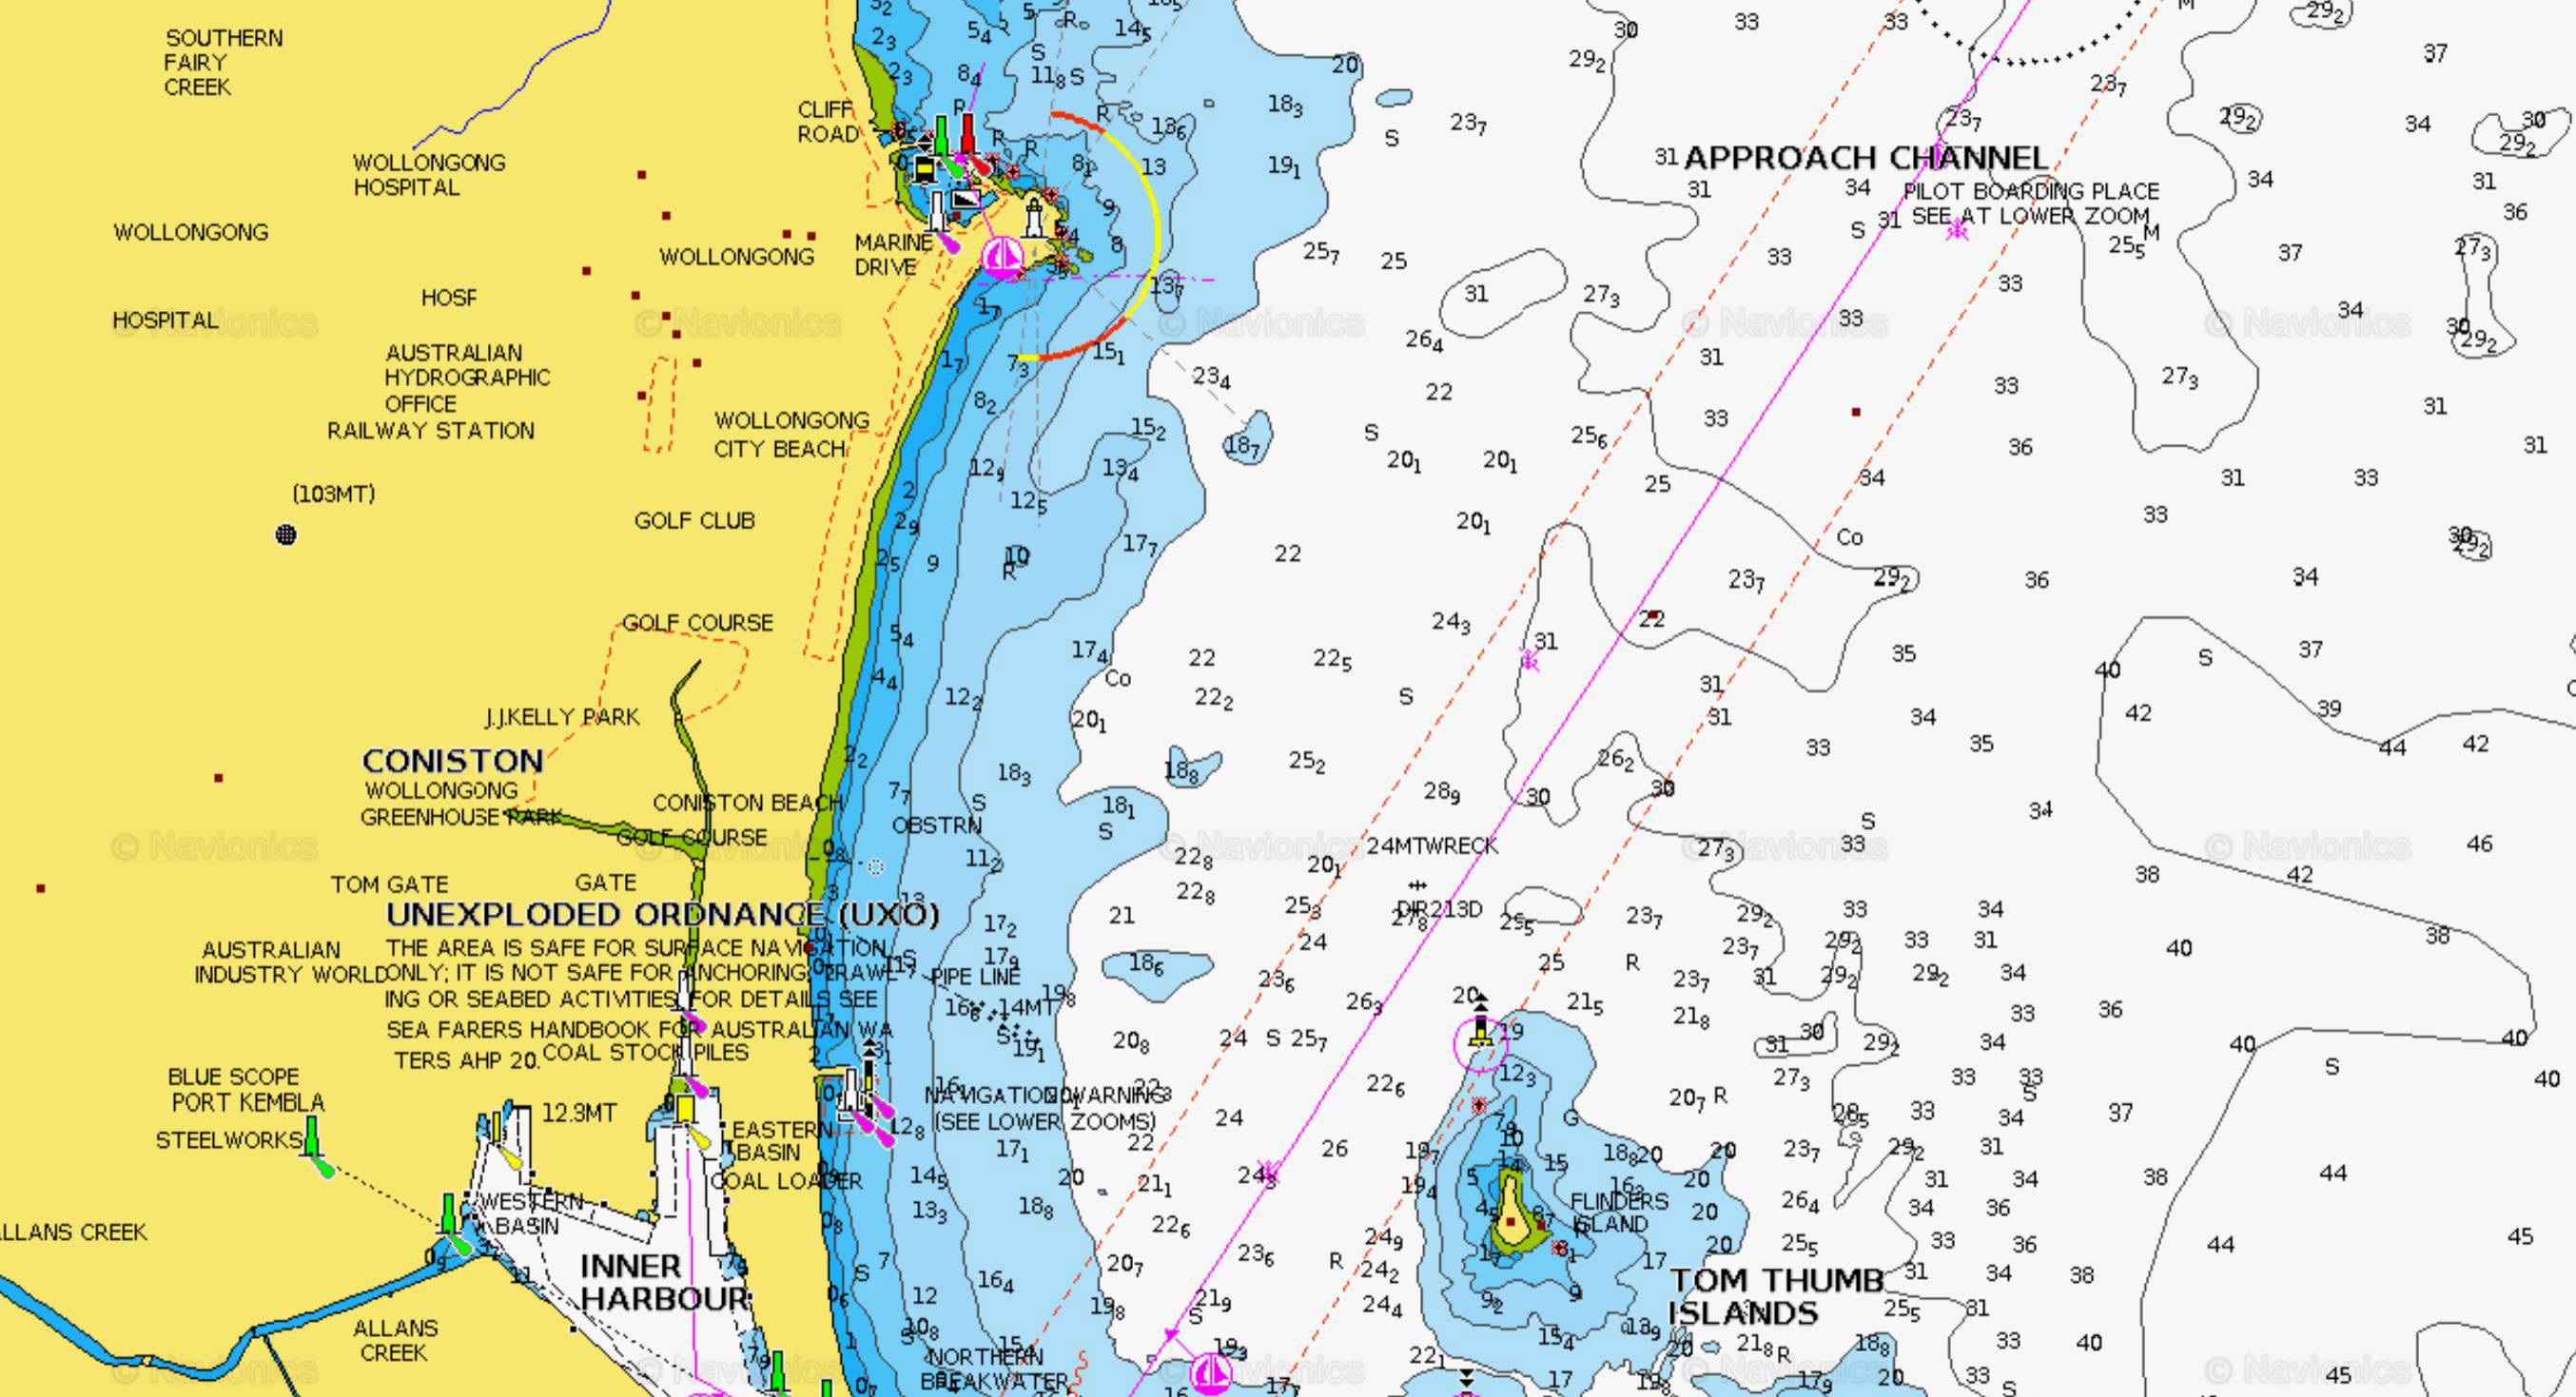 Wollongong Gps marks Fishing spots Local Reef Wrecks Offshore Maps